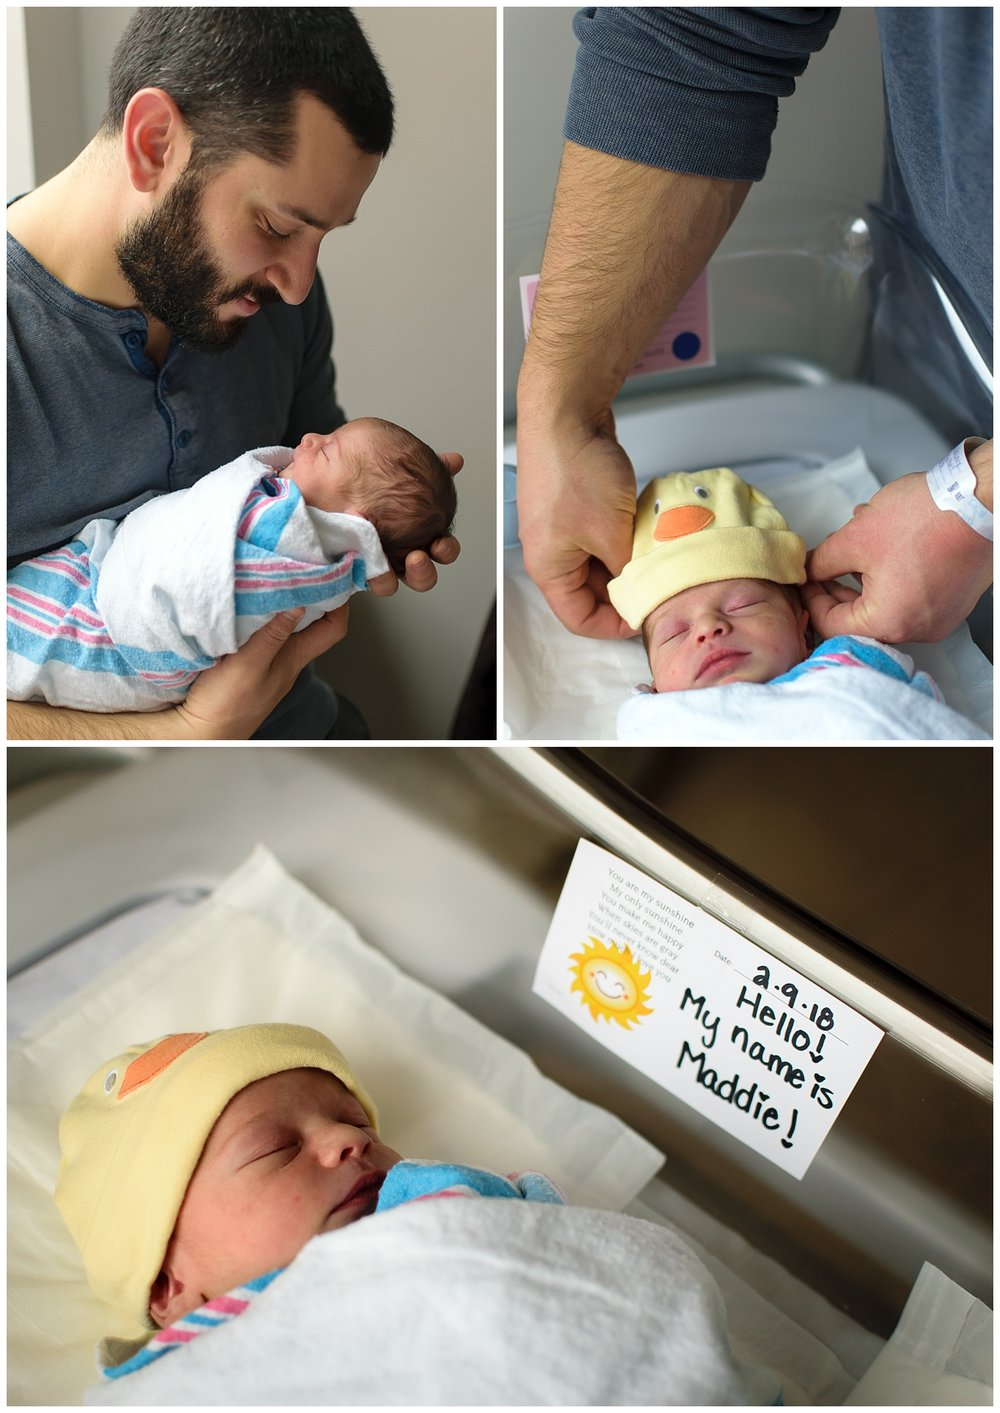 these images were taken during a fresh 48 newborn session. dad is holding the newborn baby girl and putting on a hat while she is laying in the bassinet.